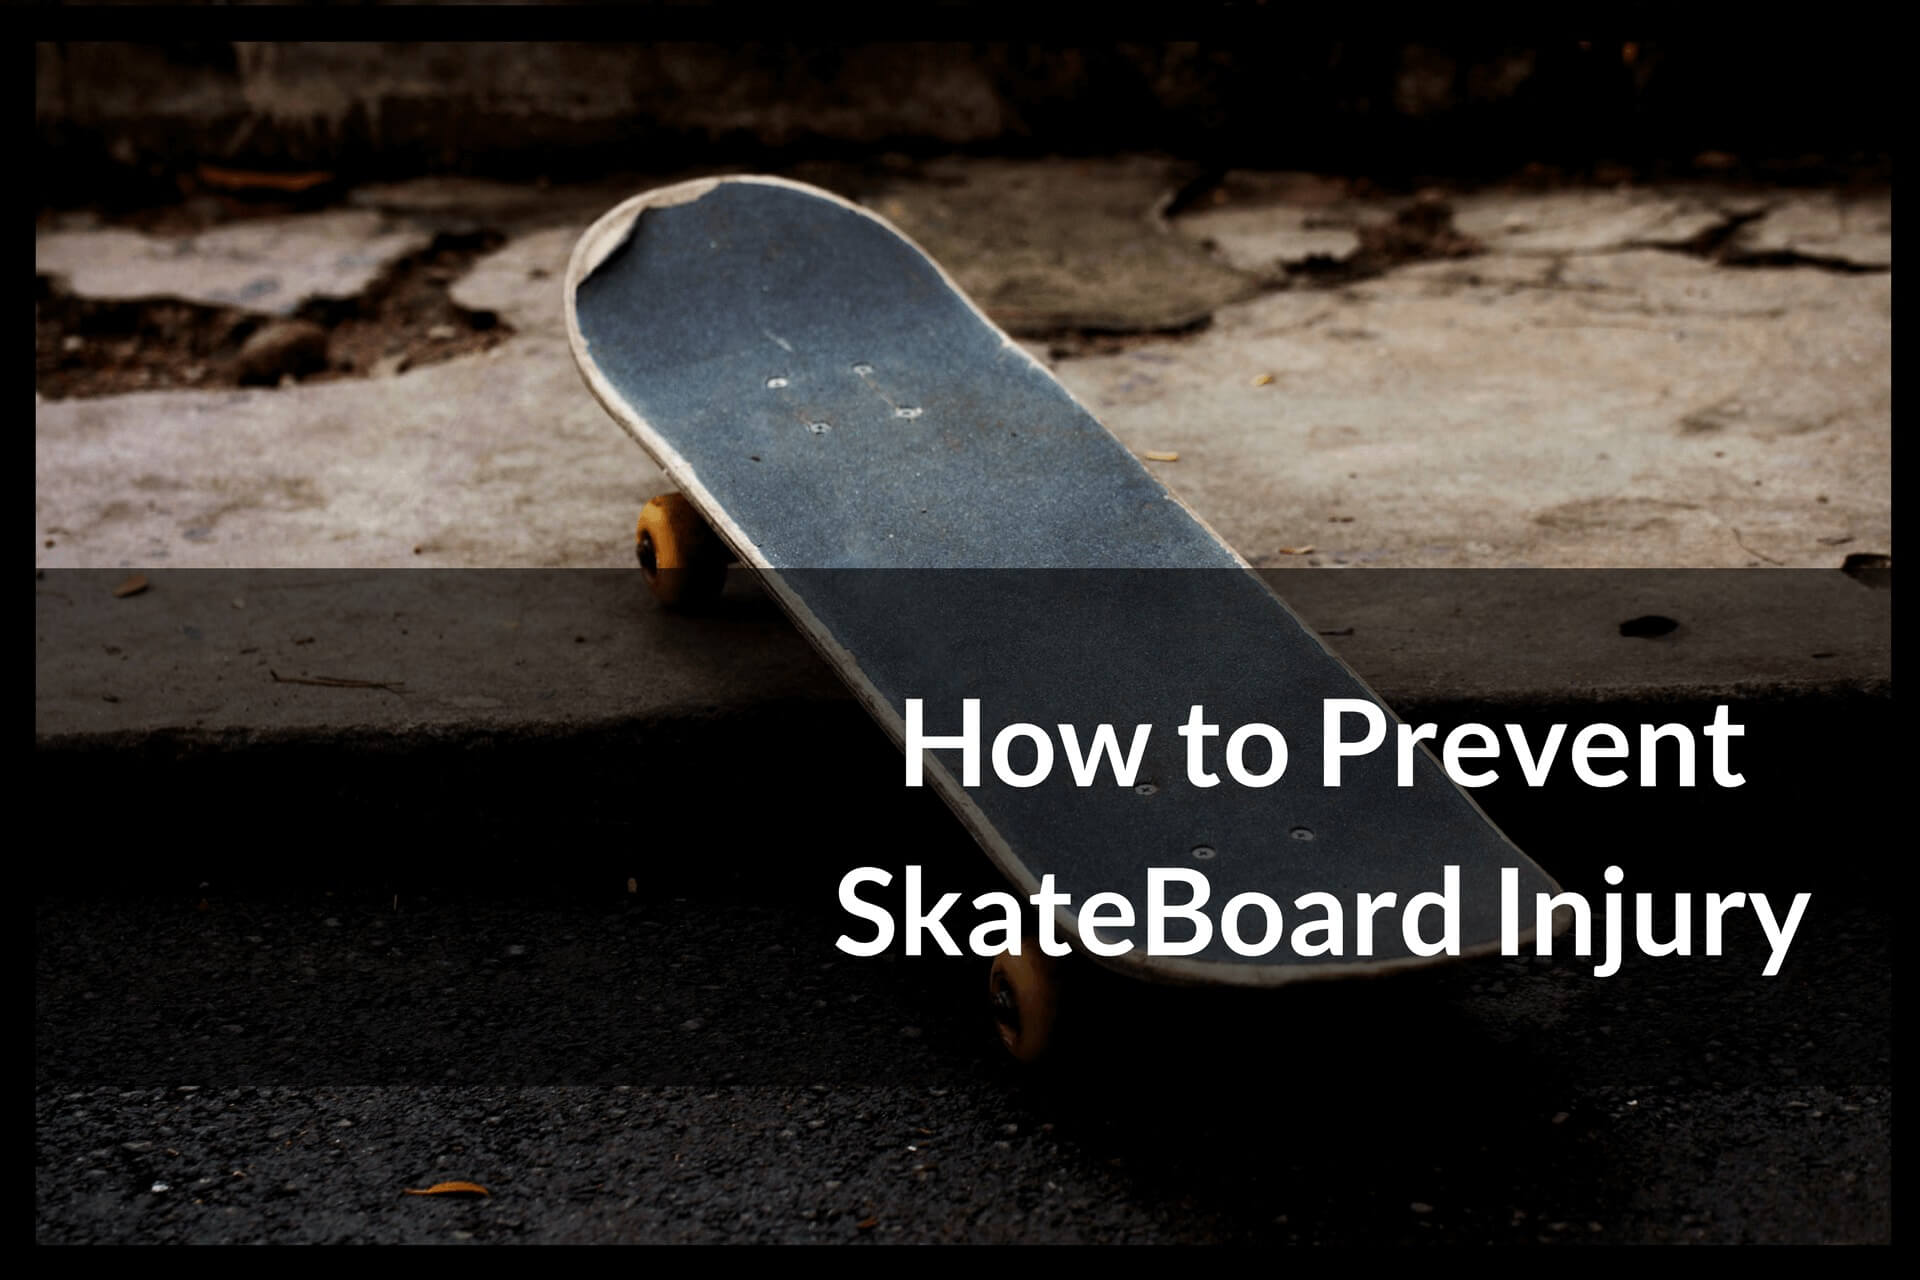 How to Prevent SkateBoard Injury